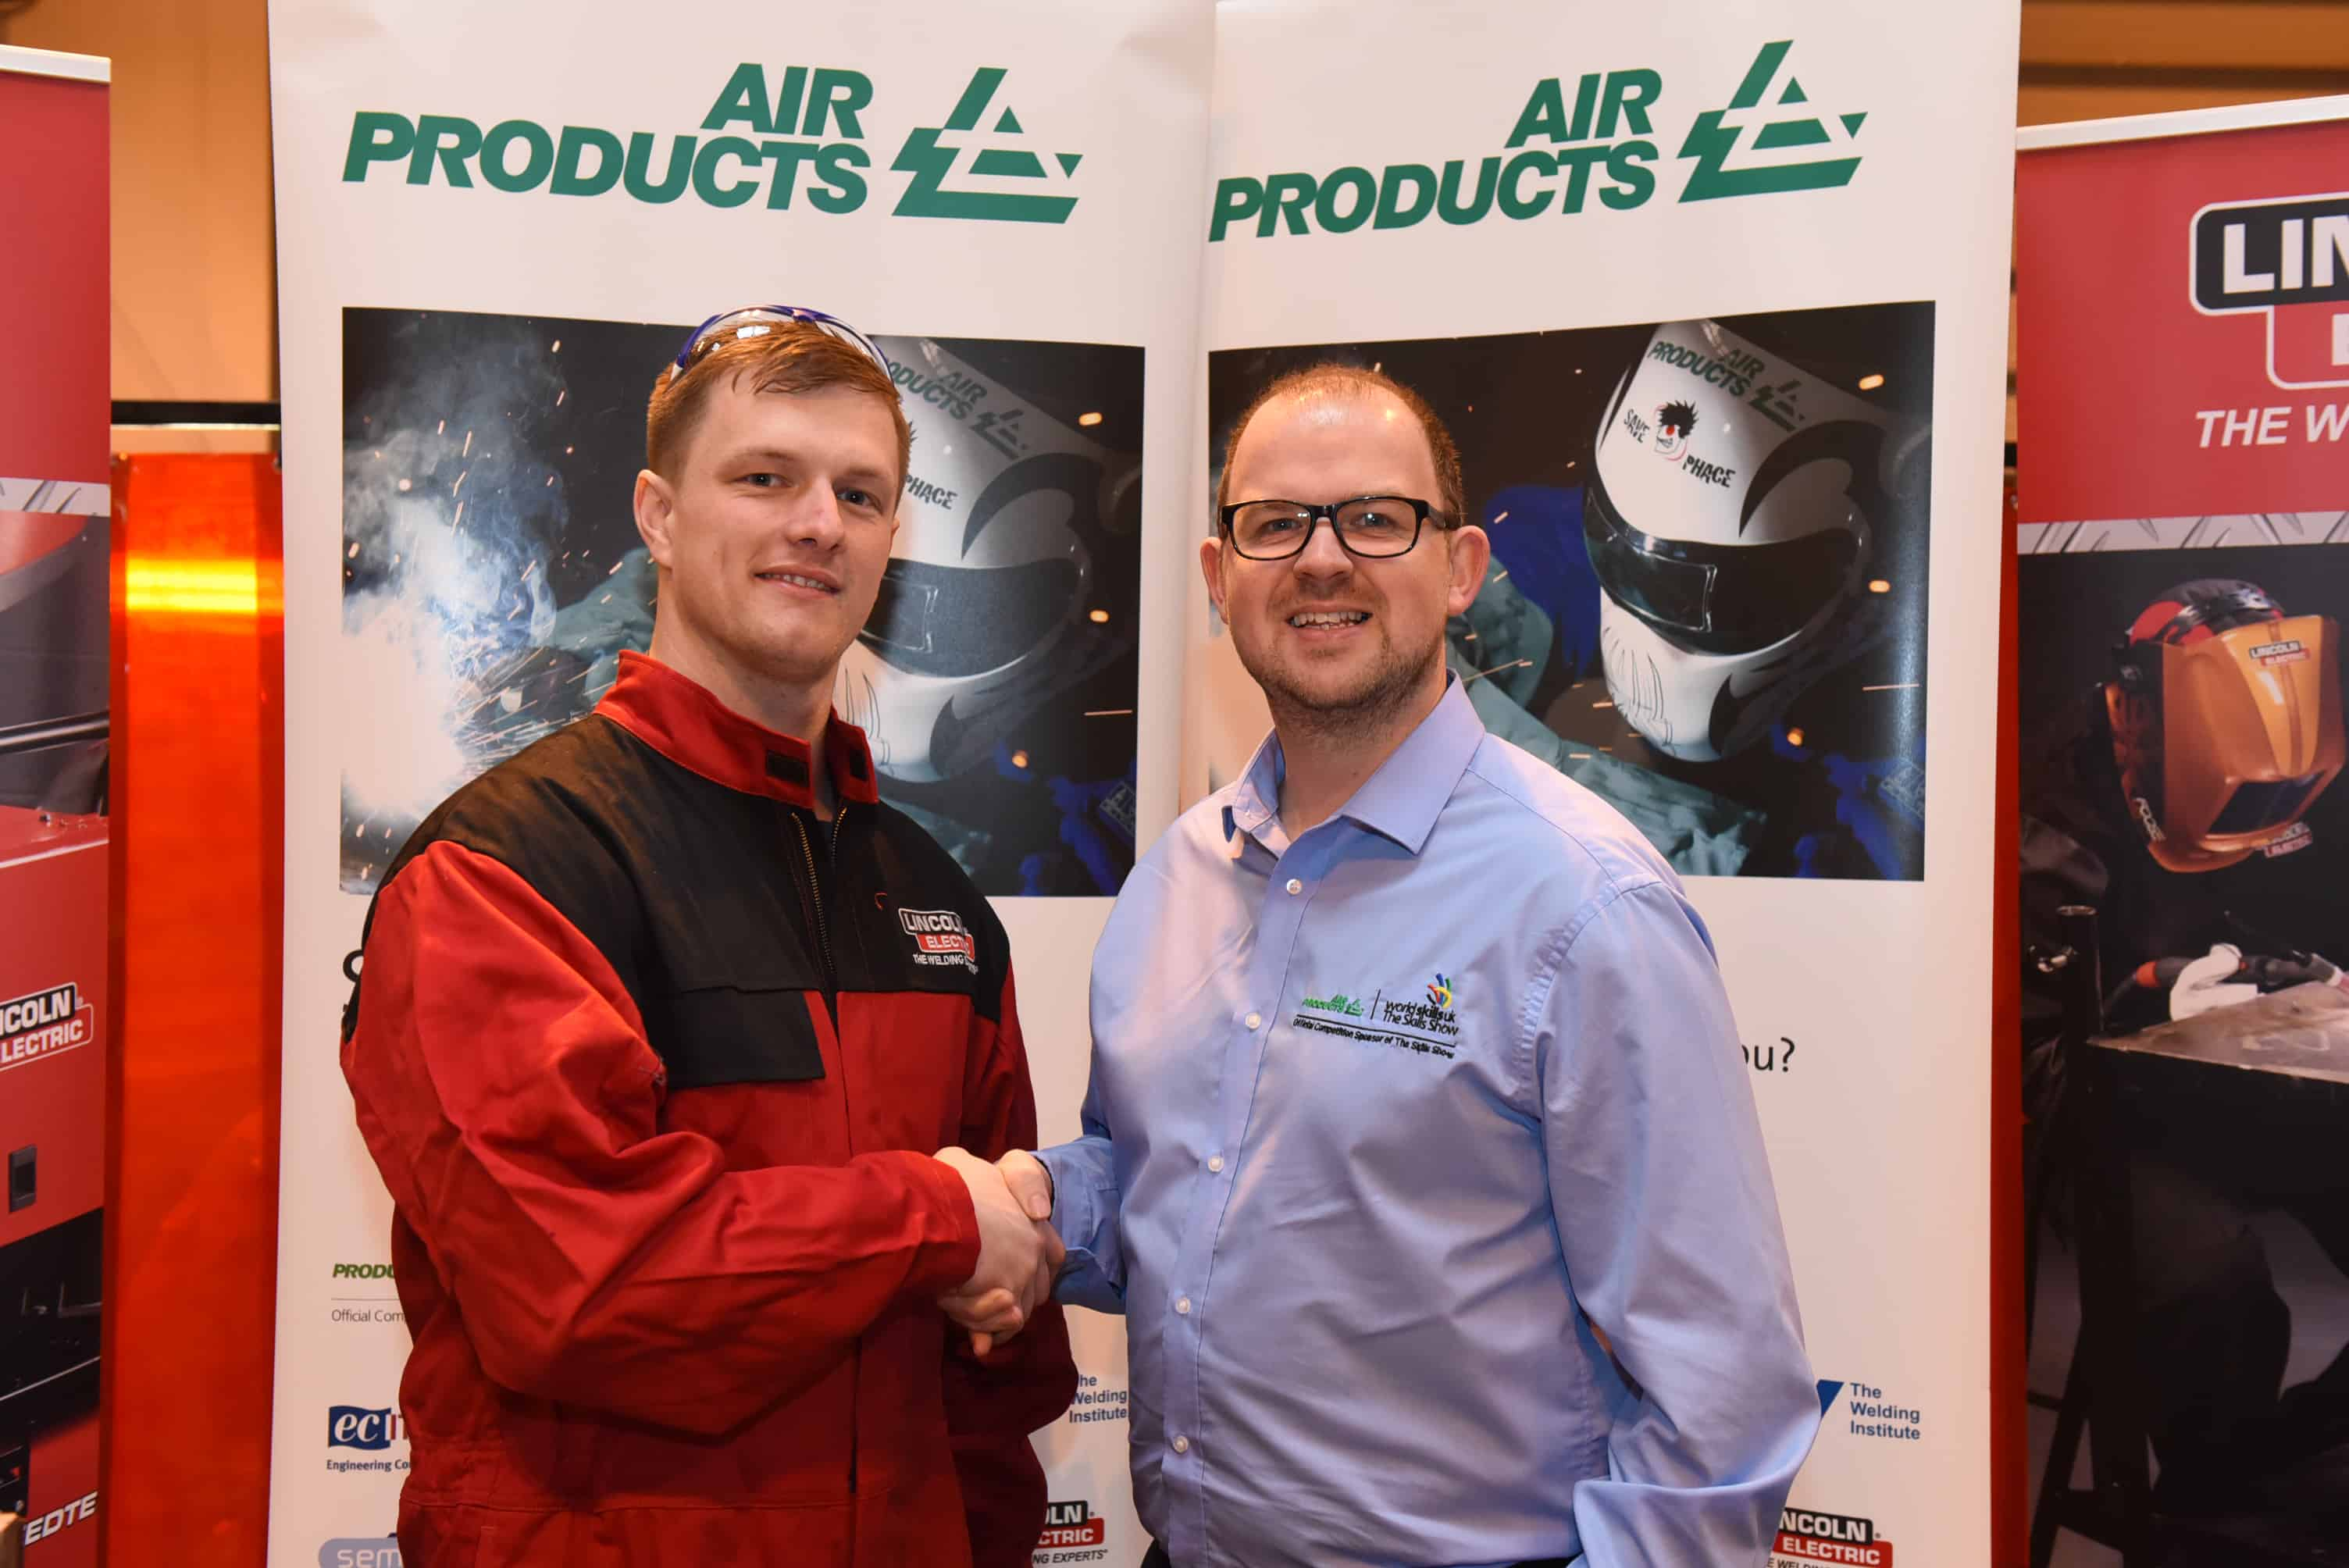 Winner James Elliott shakes hands with Kevin Sherry from air Products